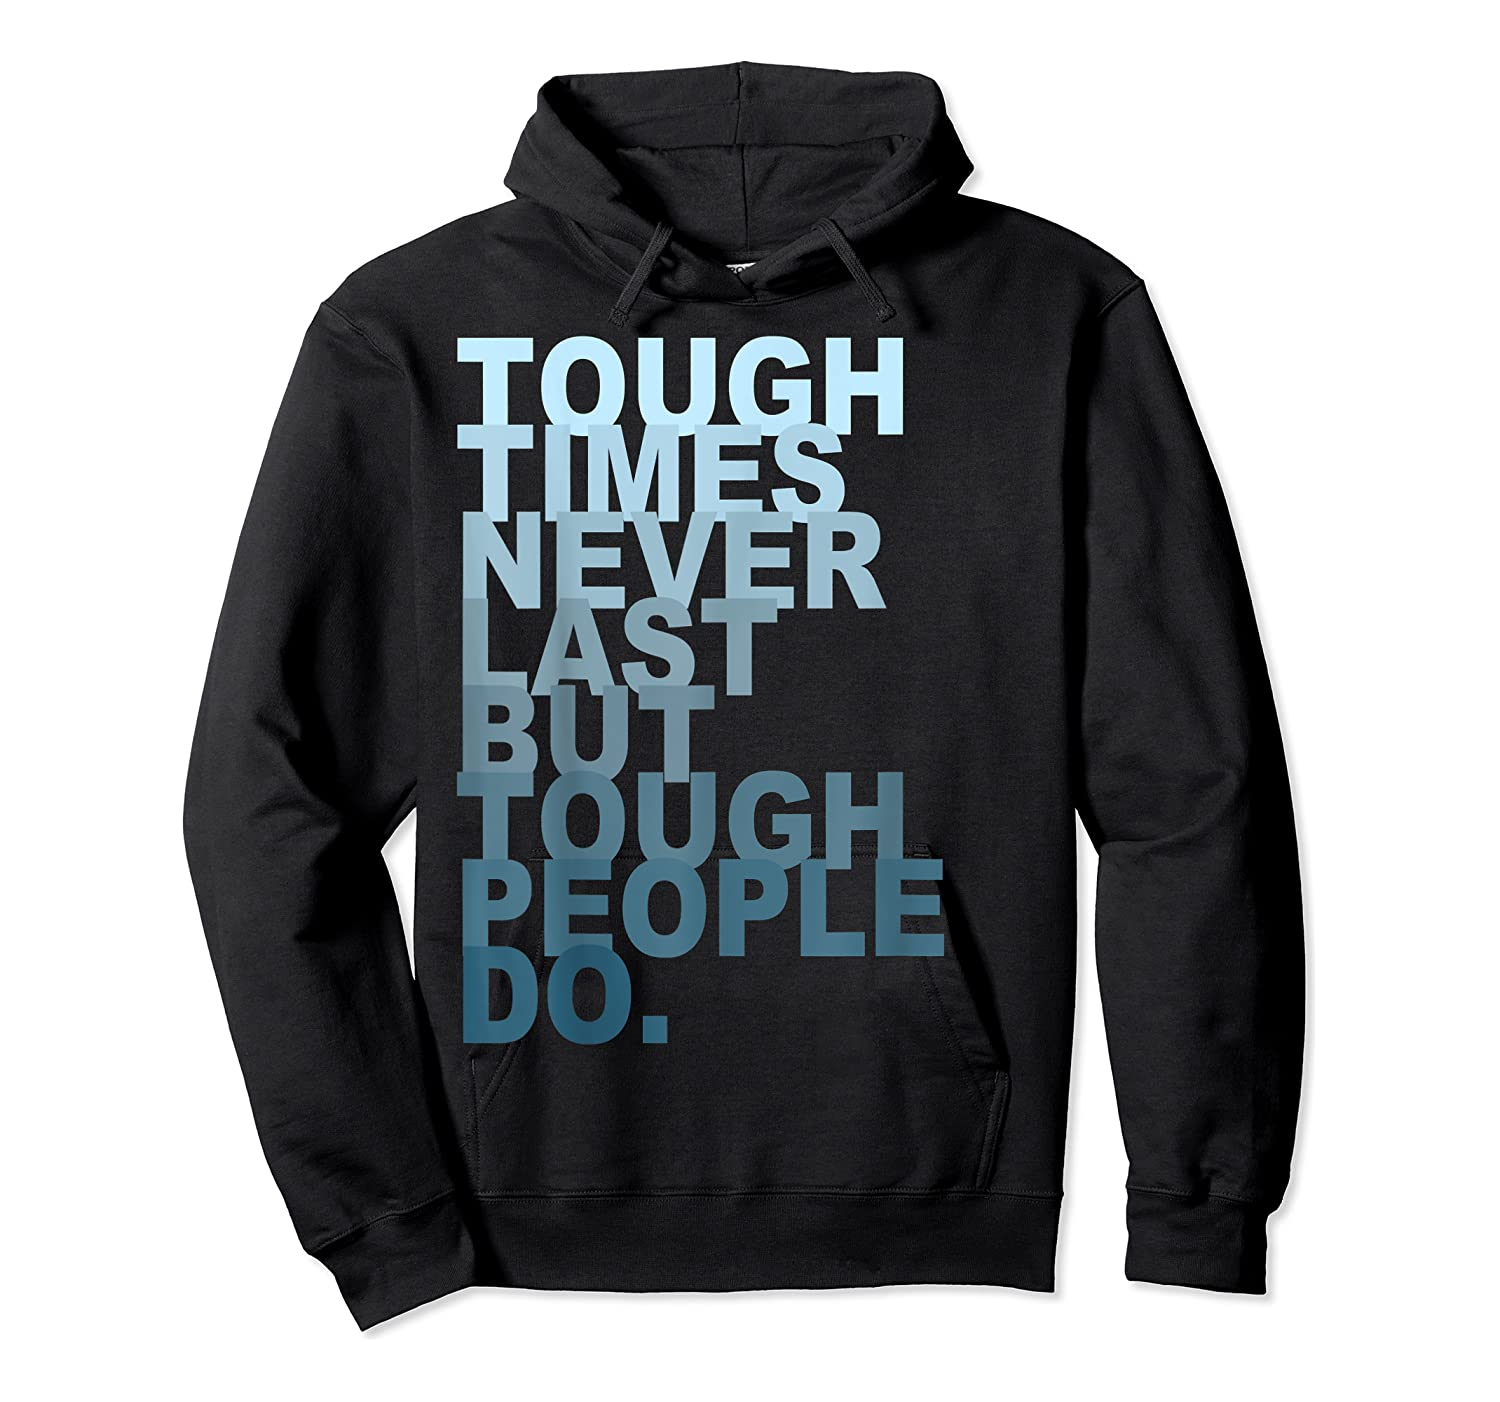 Tough Times Never Last But Tough People Do Ts Shirts Unisex Pullover Hoodie